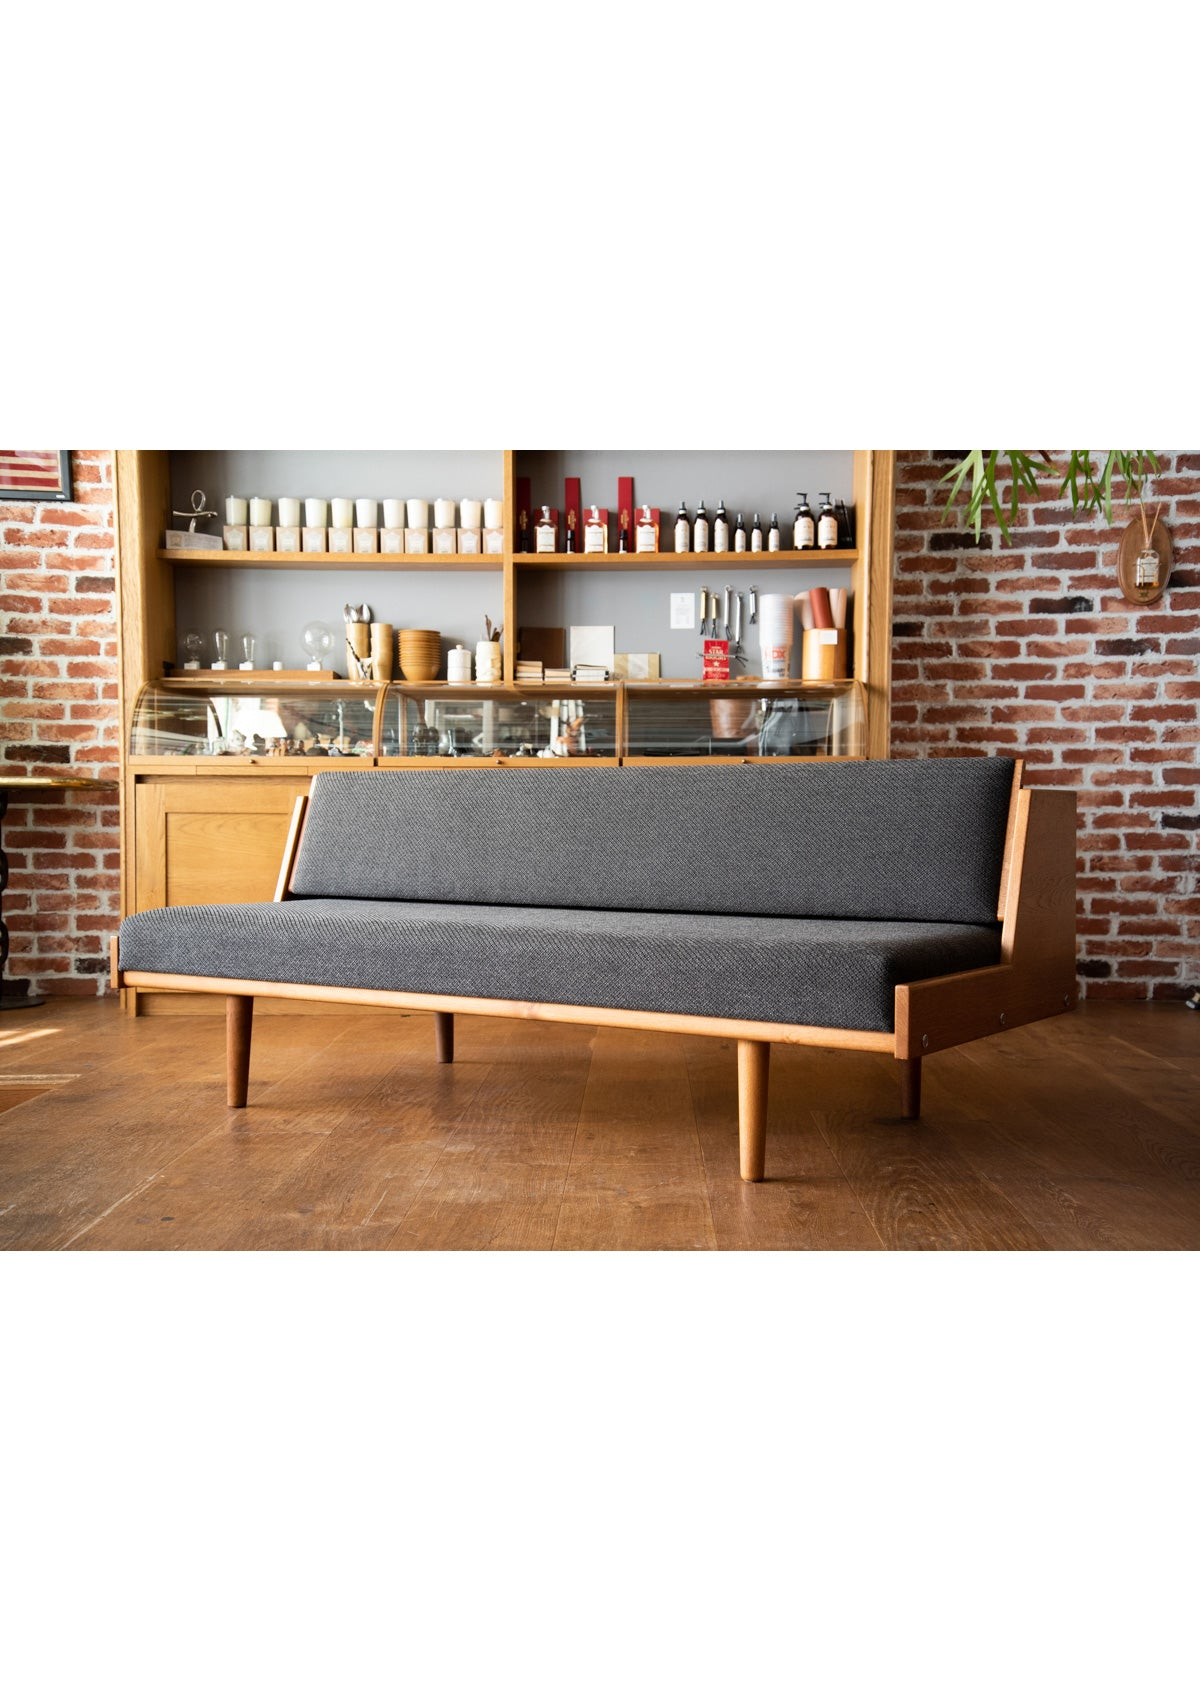 HANS J WEGNER DAY BED